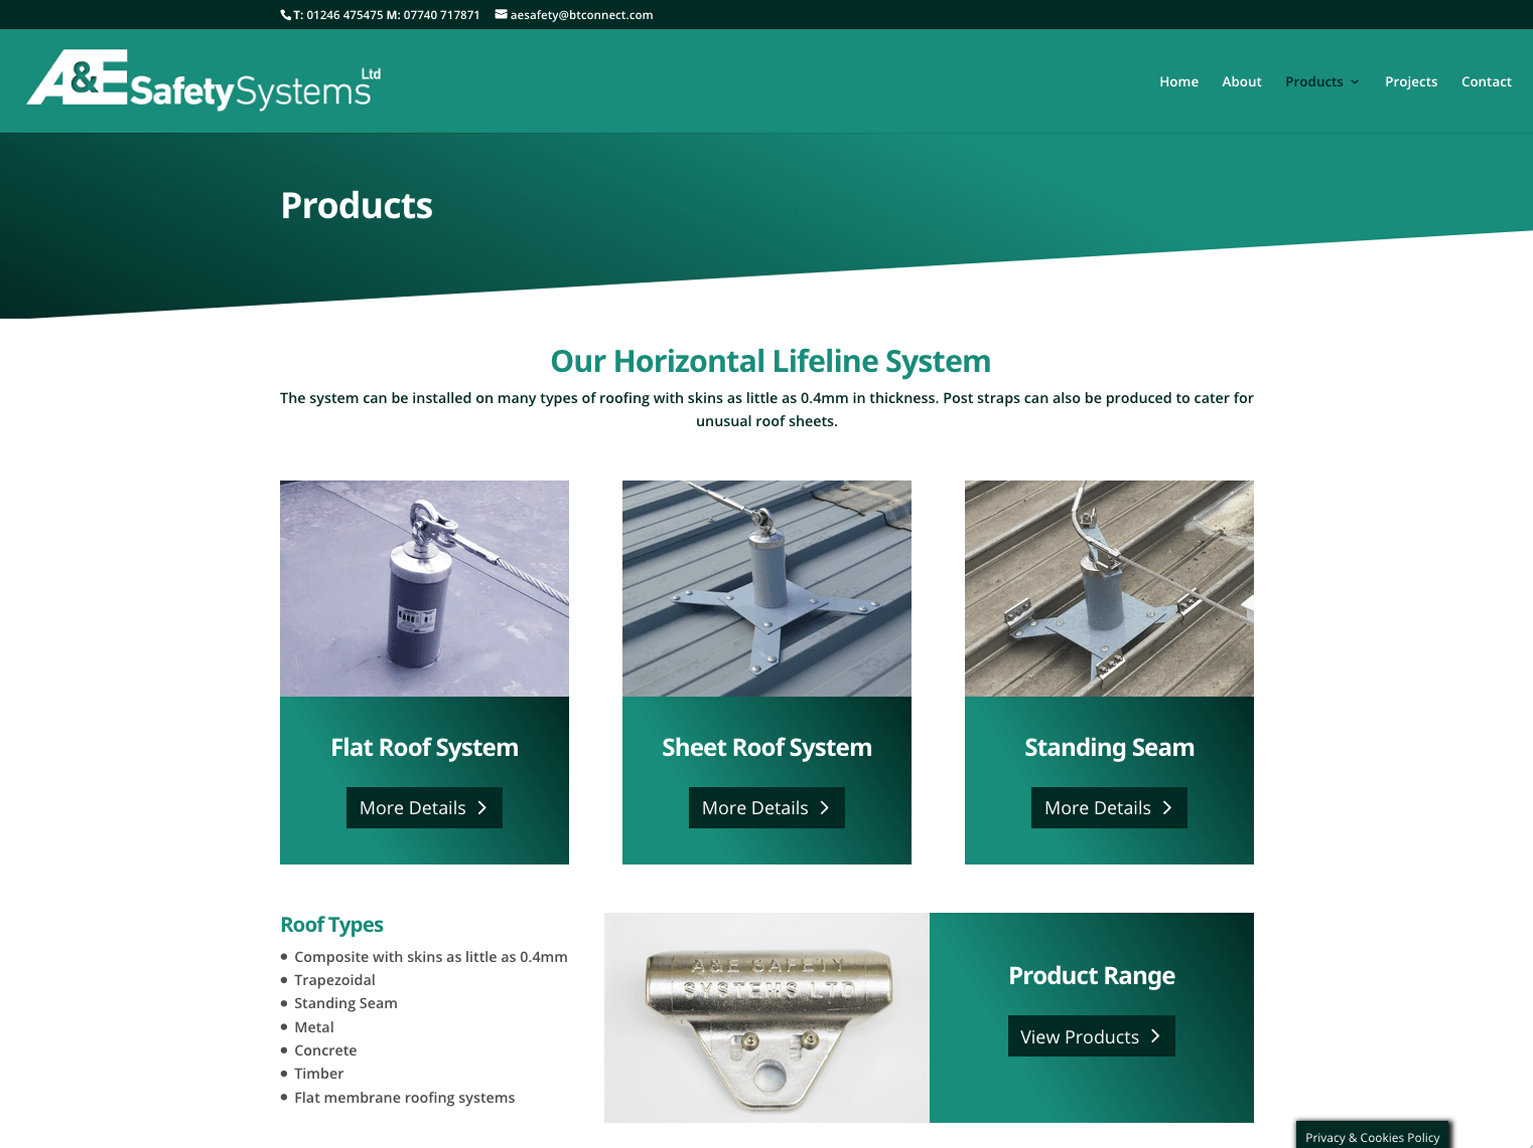 A & E Safety Systems website product page